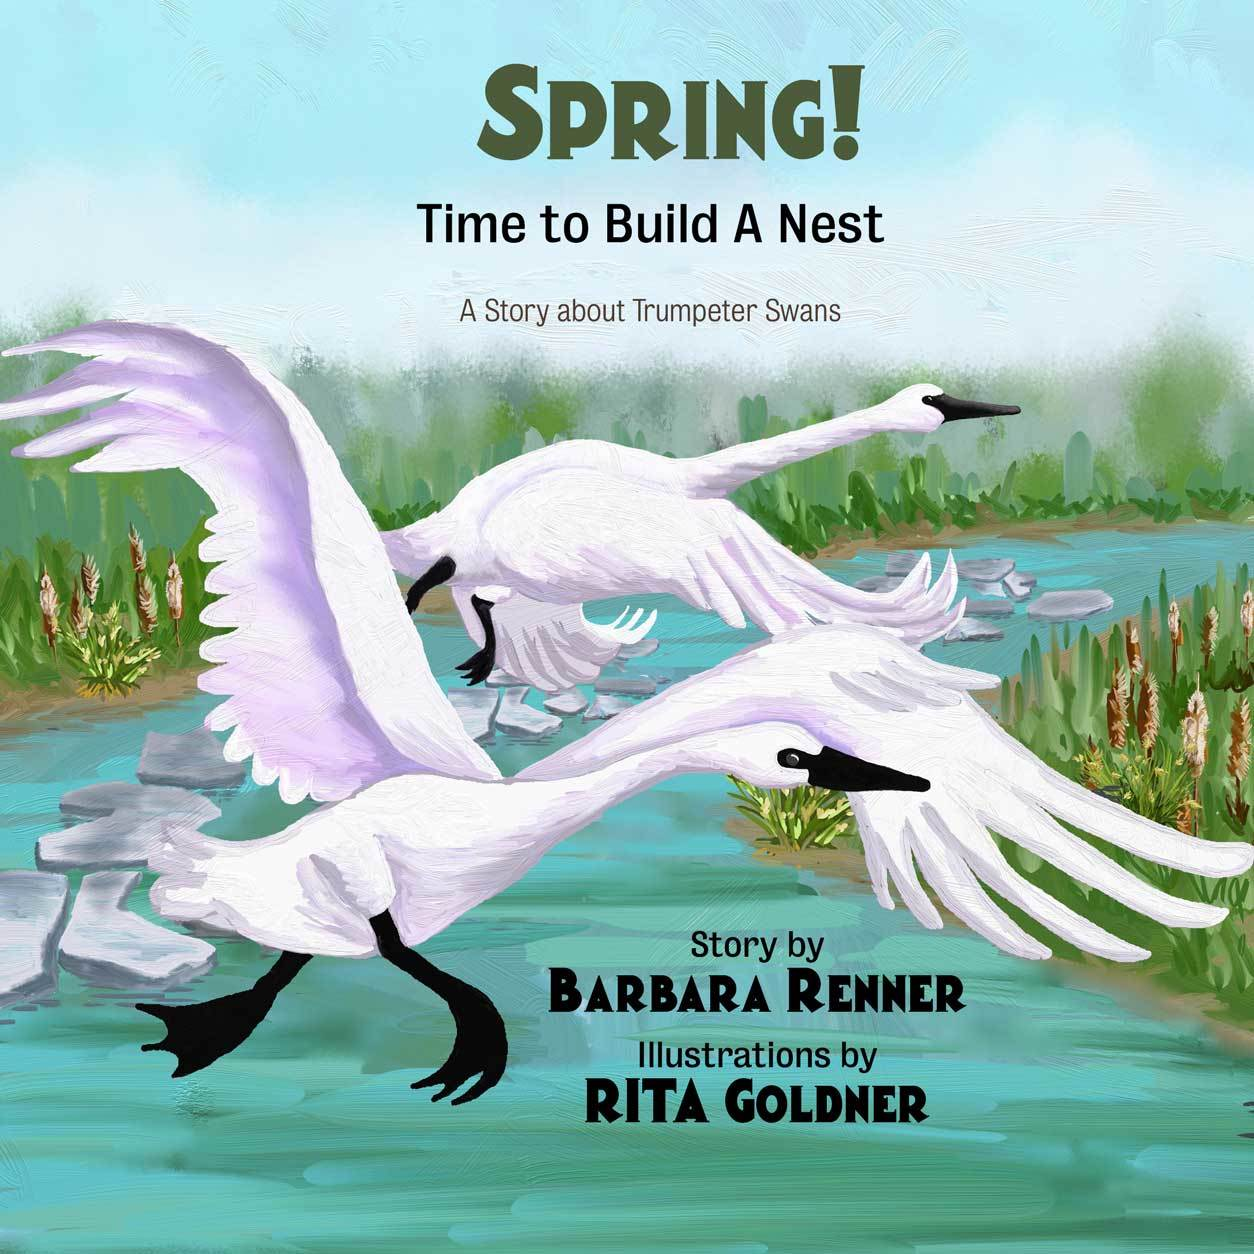 SPRING! TIME TO BUILD A NEST